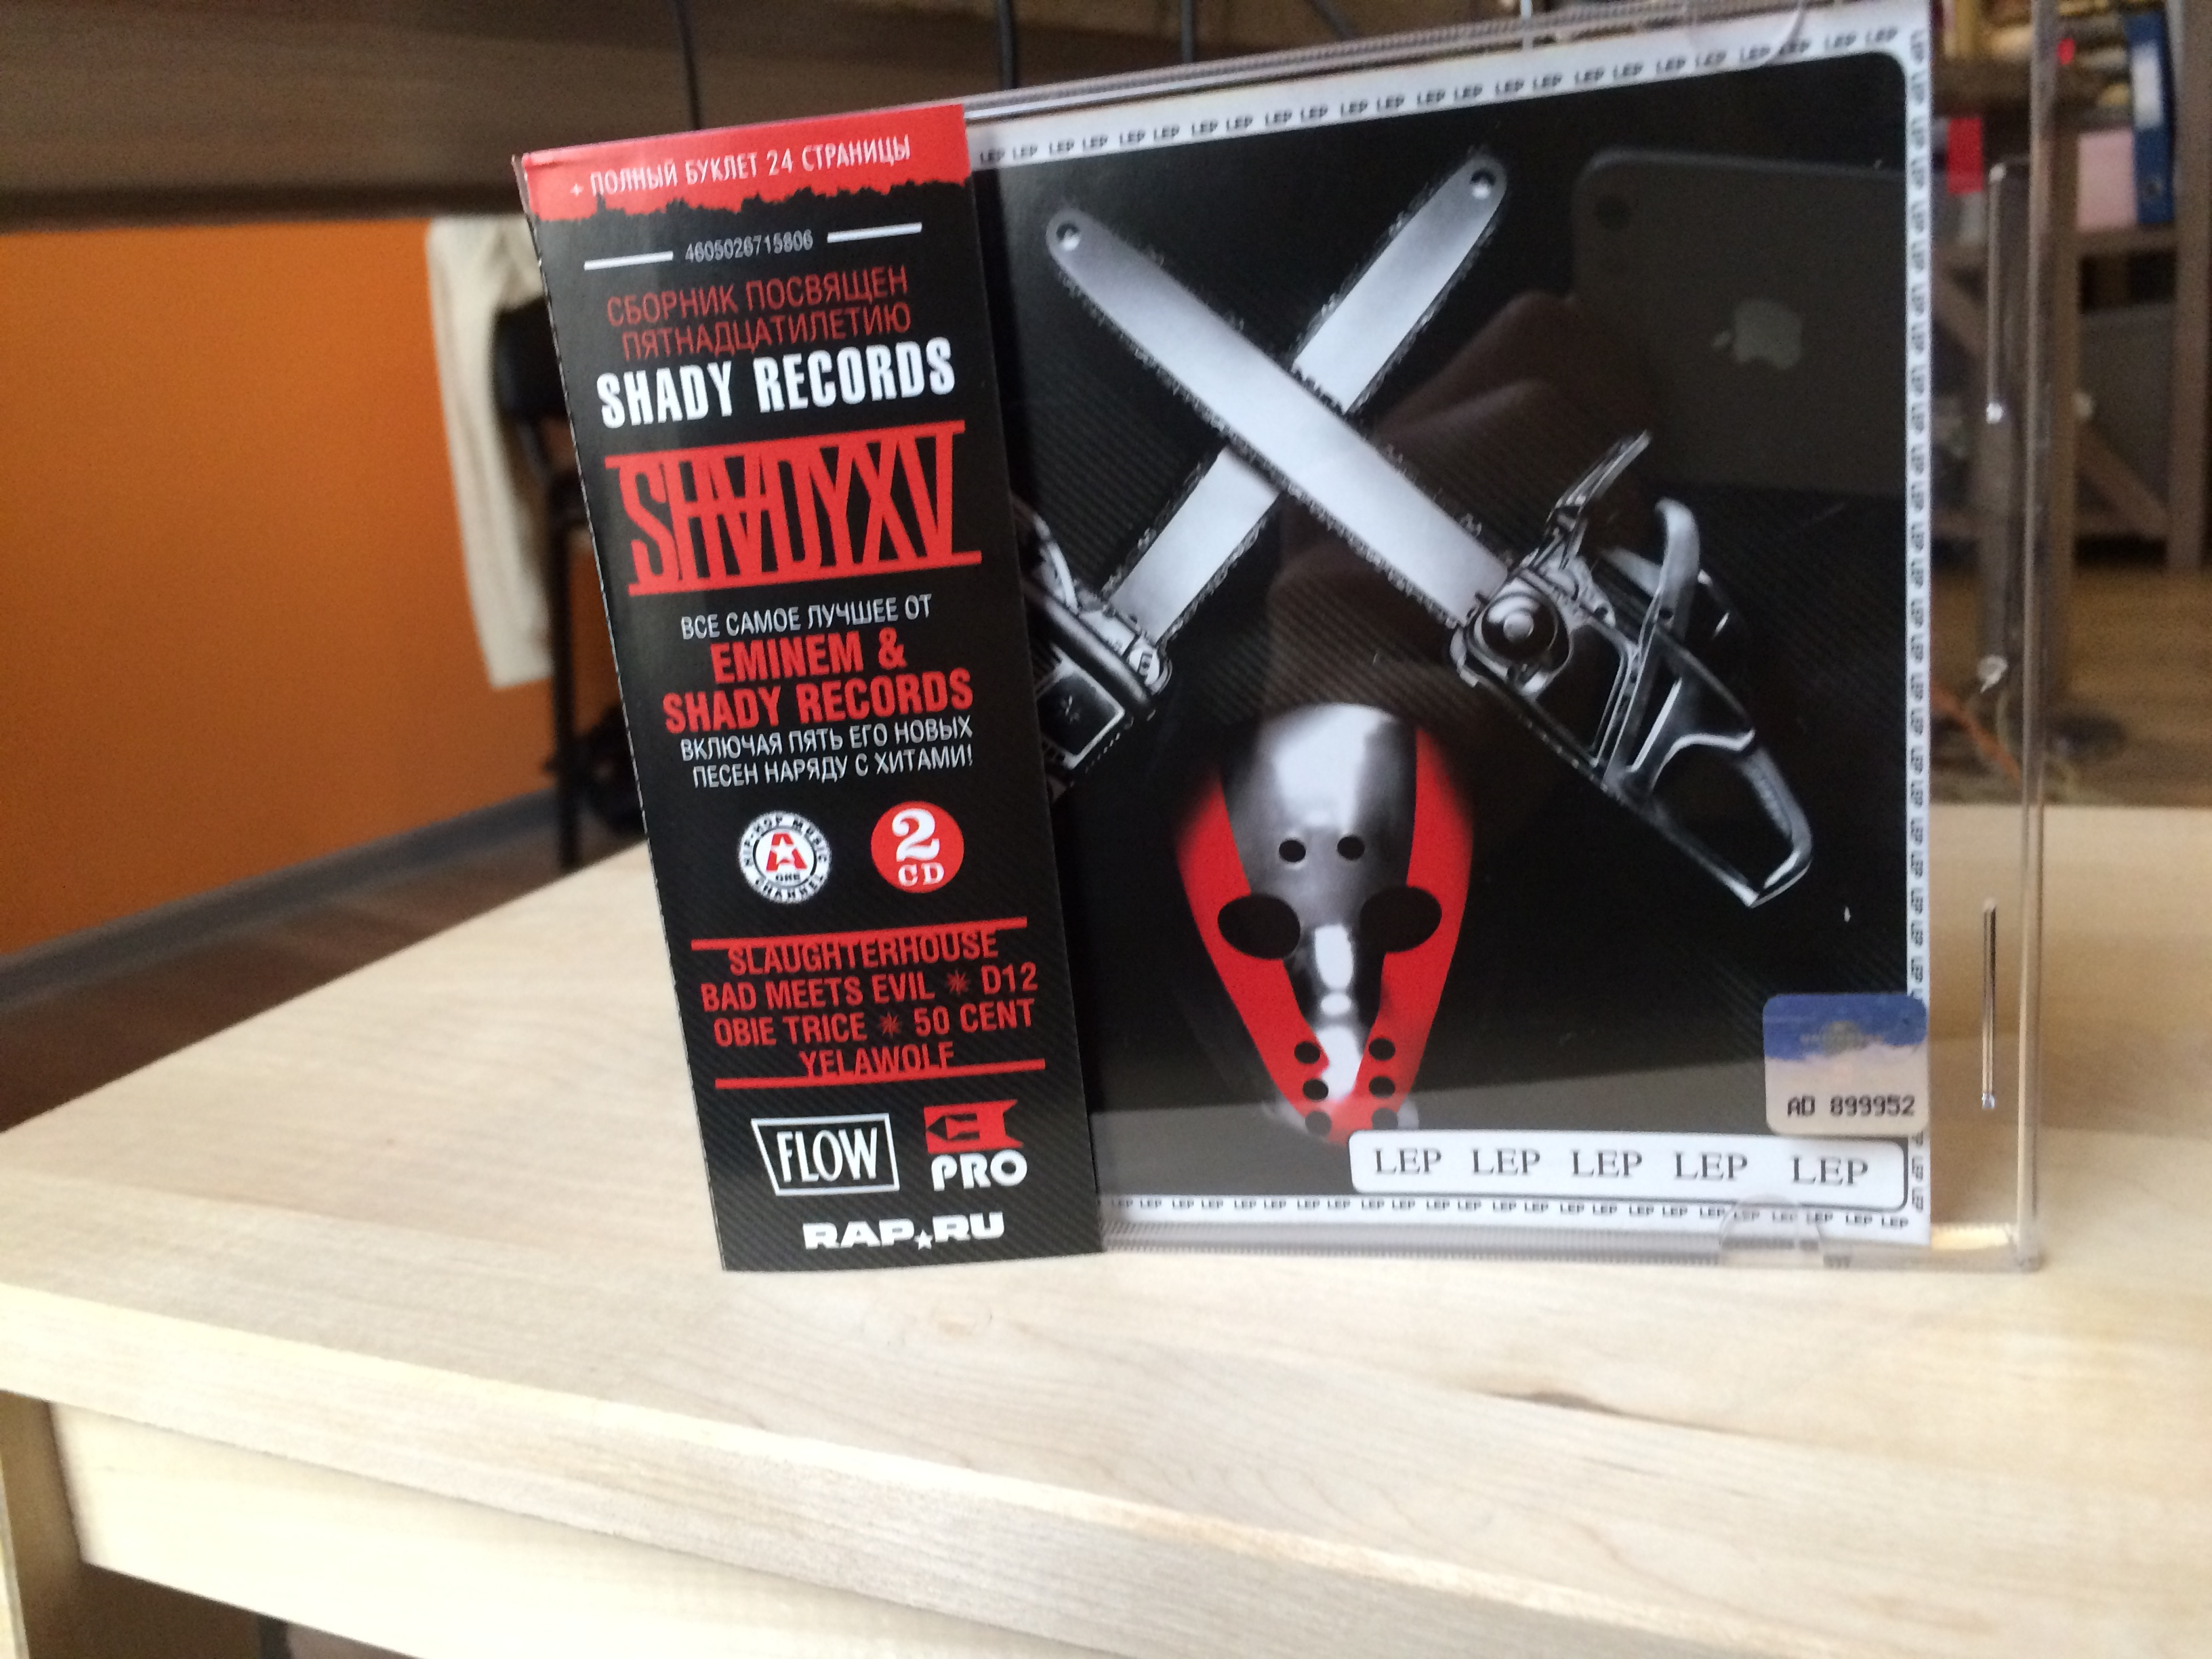 Overview Of The Russian Edition Of Quot Shadyxv Quot Album